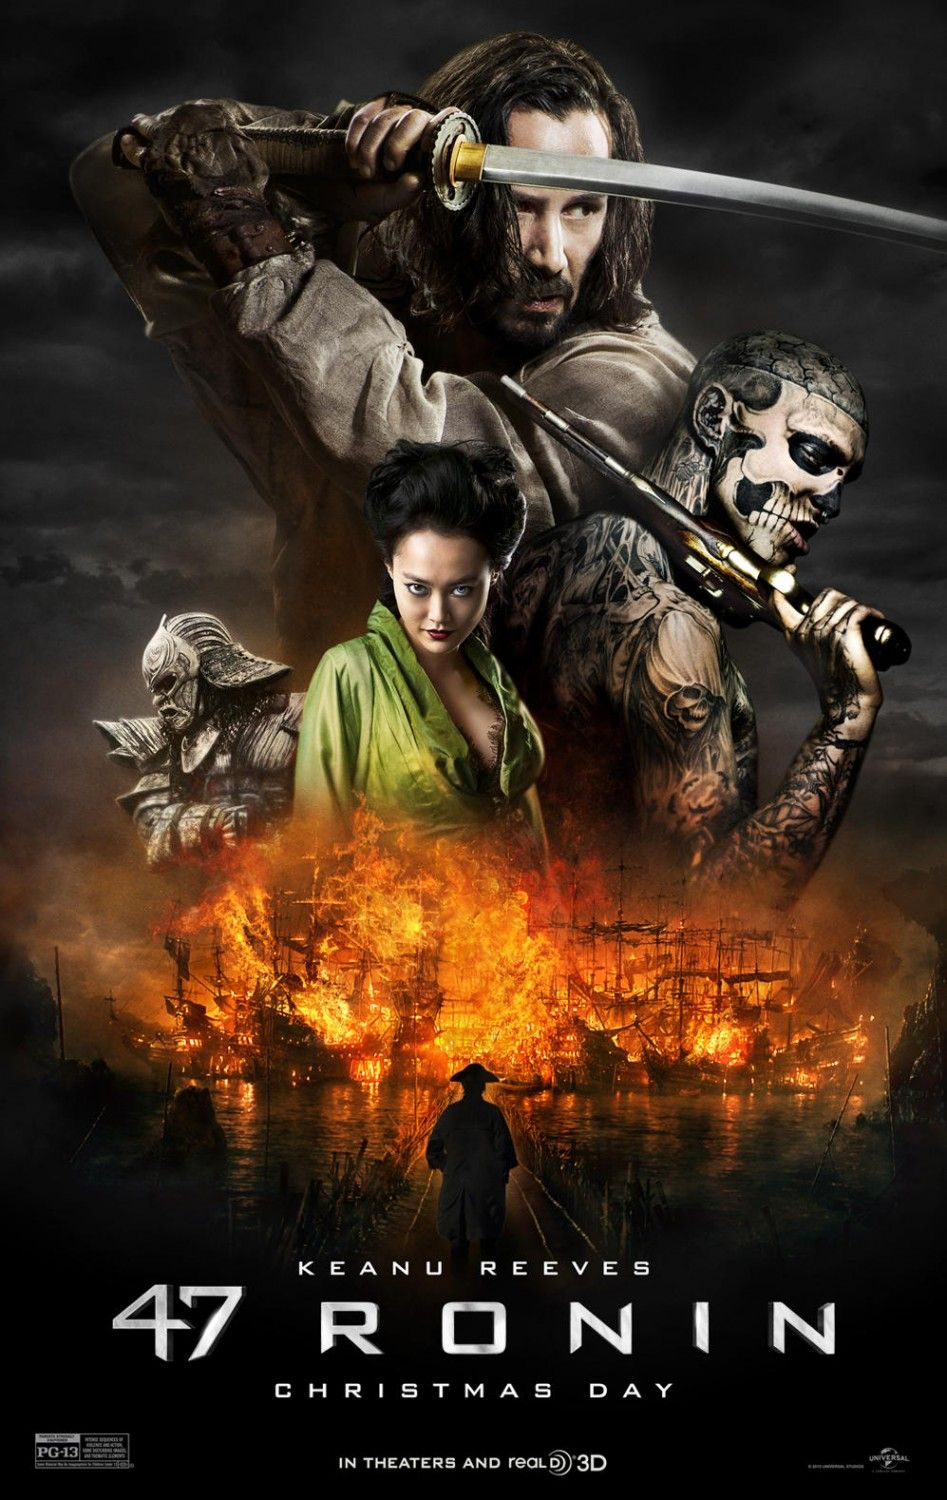 featurette-for-47-ronin-has-more-new-footage.jpg